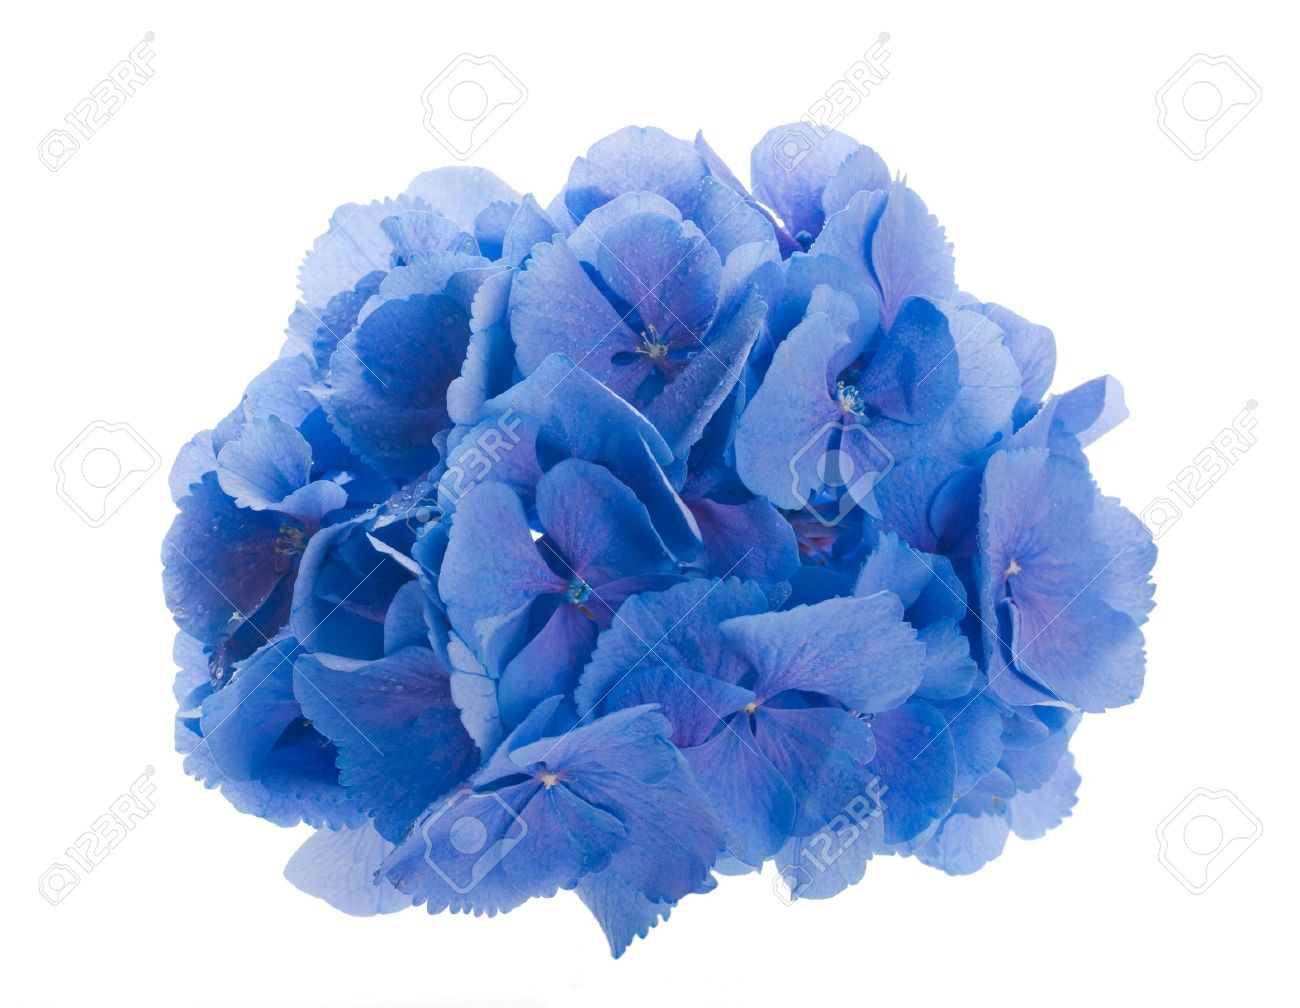 Flowers In A Bouquet Blue Hydrangeas And White Flowers Stock Photo